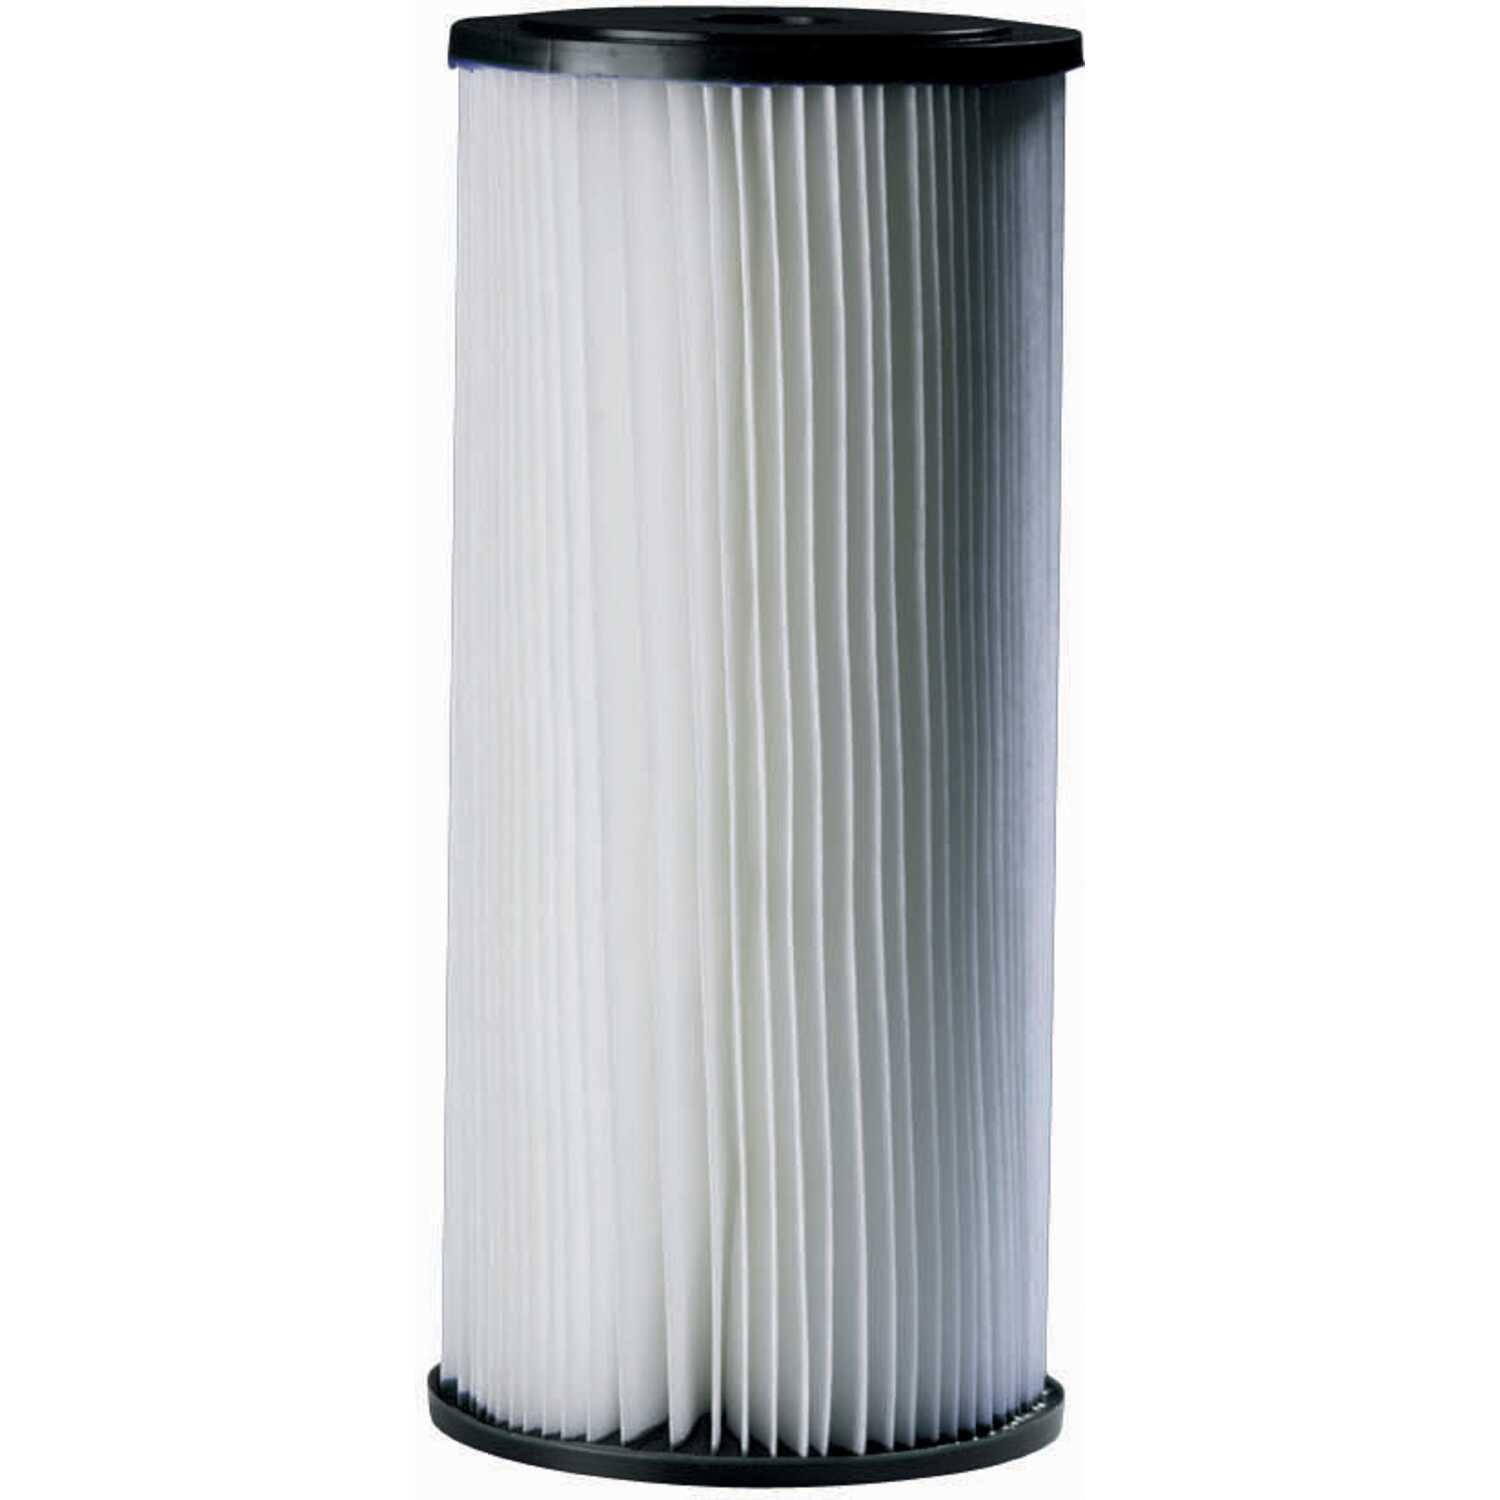 OMNIFilter  Replacement Filter Cartridge  15000 gal.